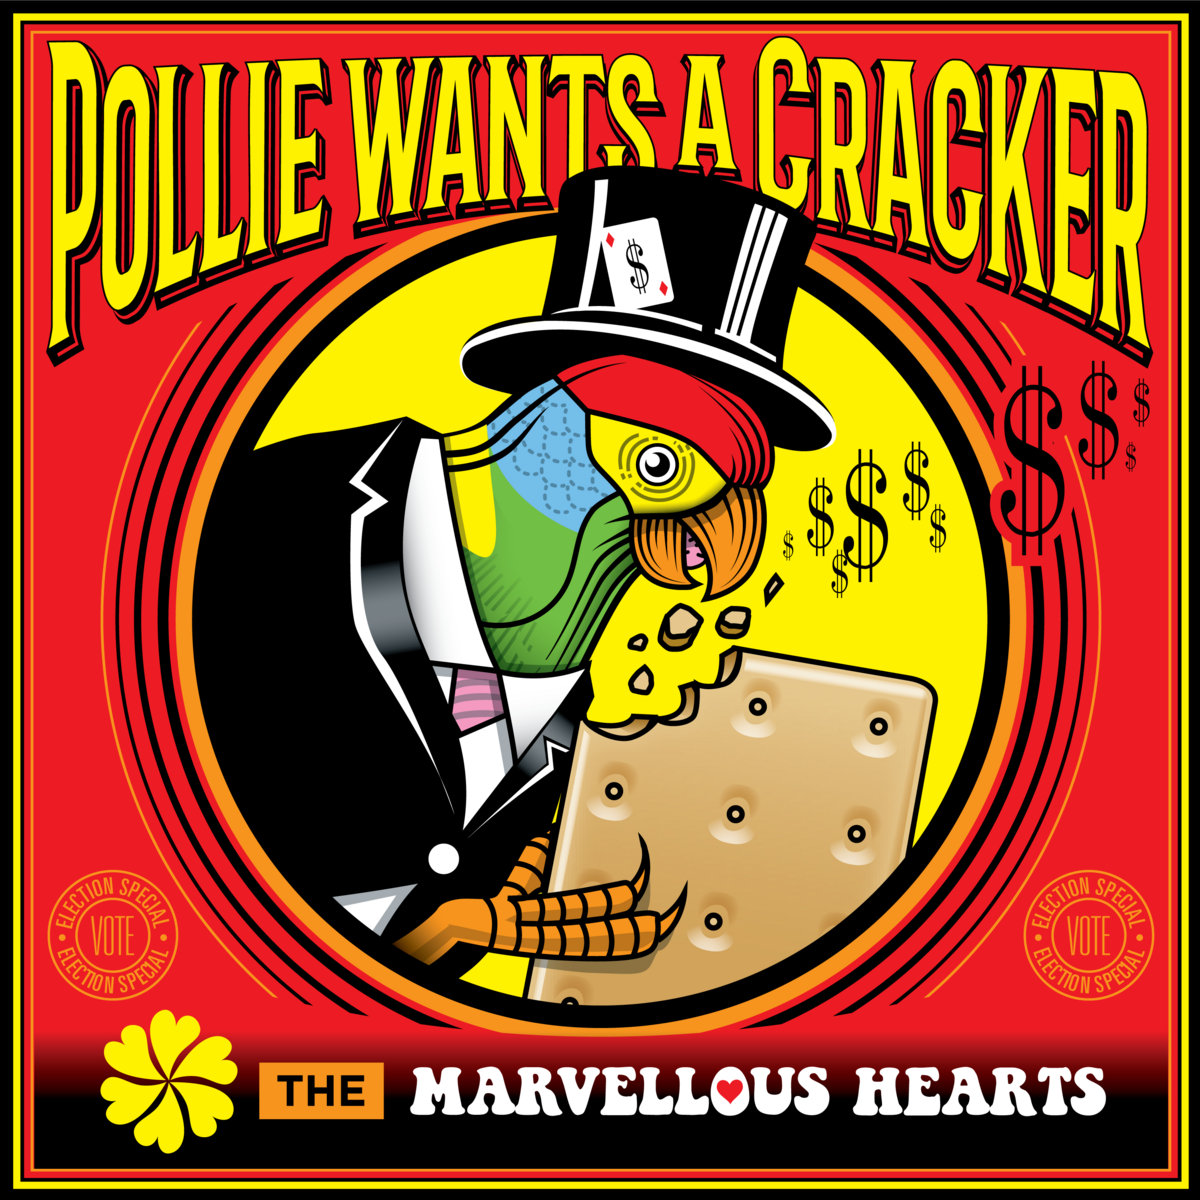 Pollie Wants a Cracker by The Marvellous Hearts